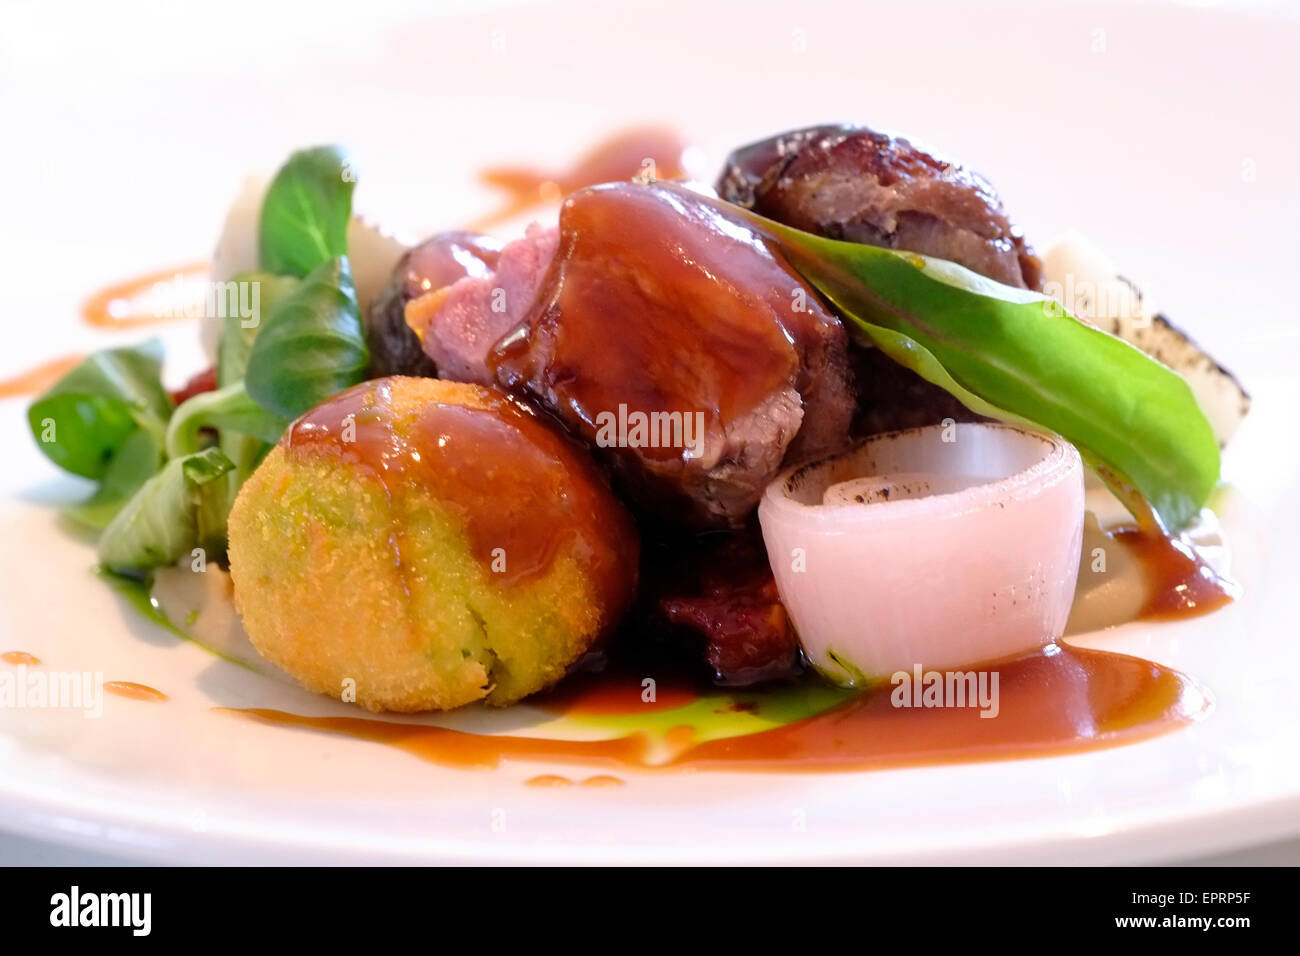 Gourmet dish served  at the 3 chef restaurant 'Tam labam bus augt' ( Translation - What's Good Will - Stock Image